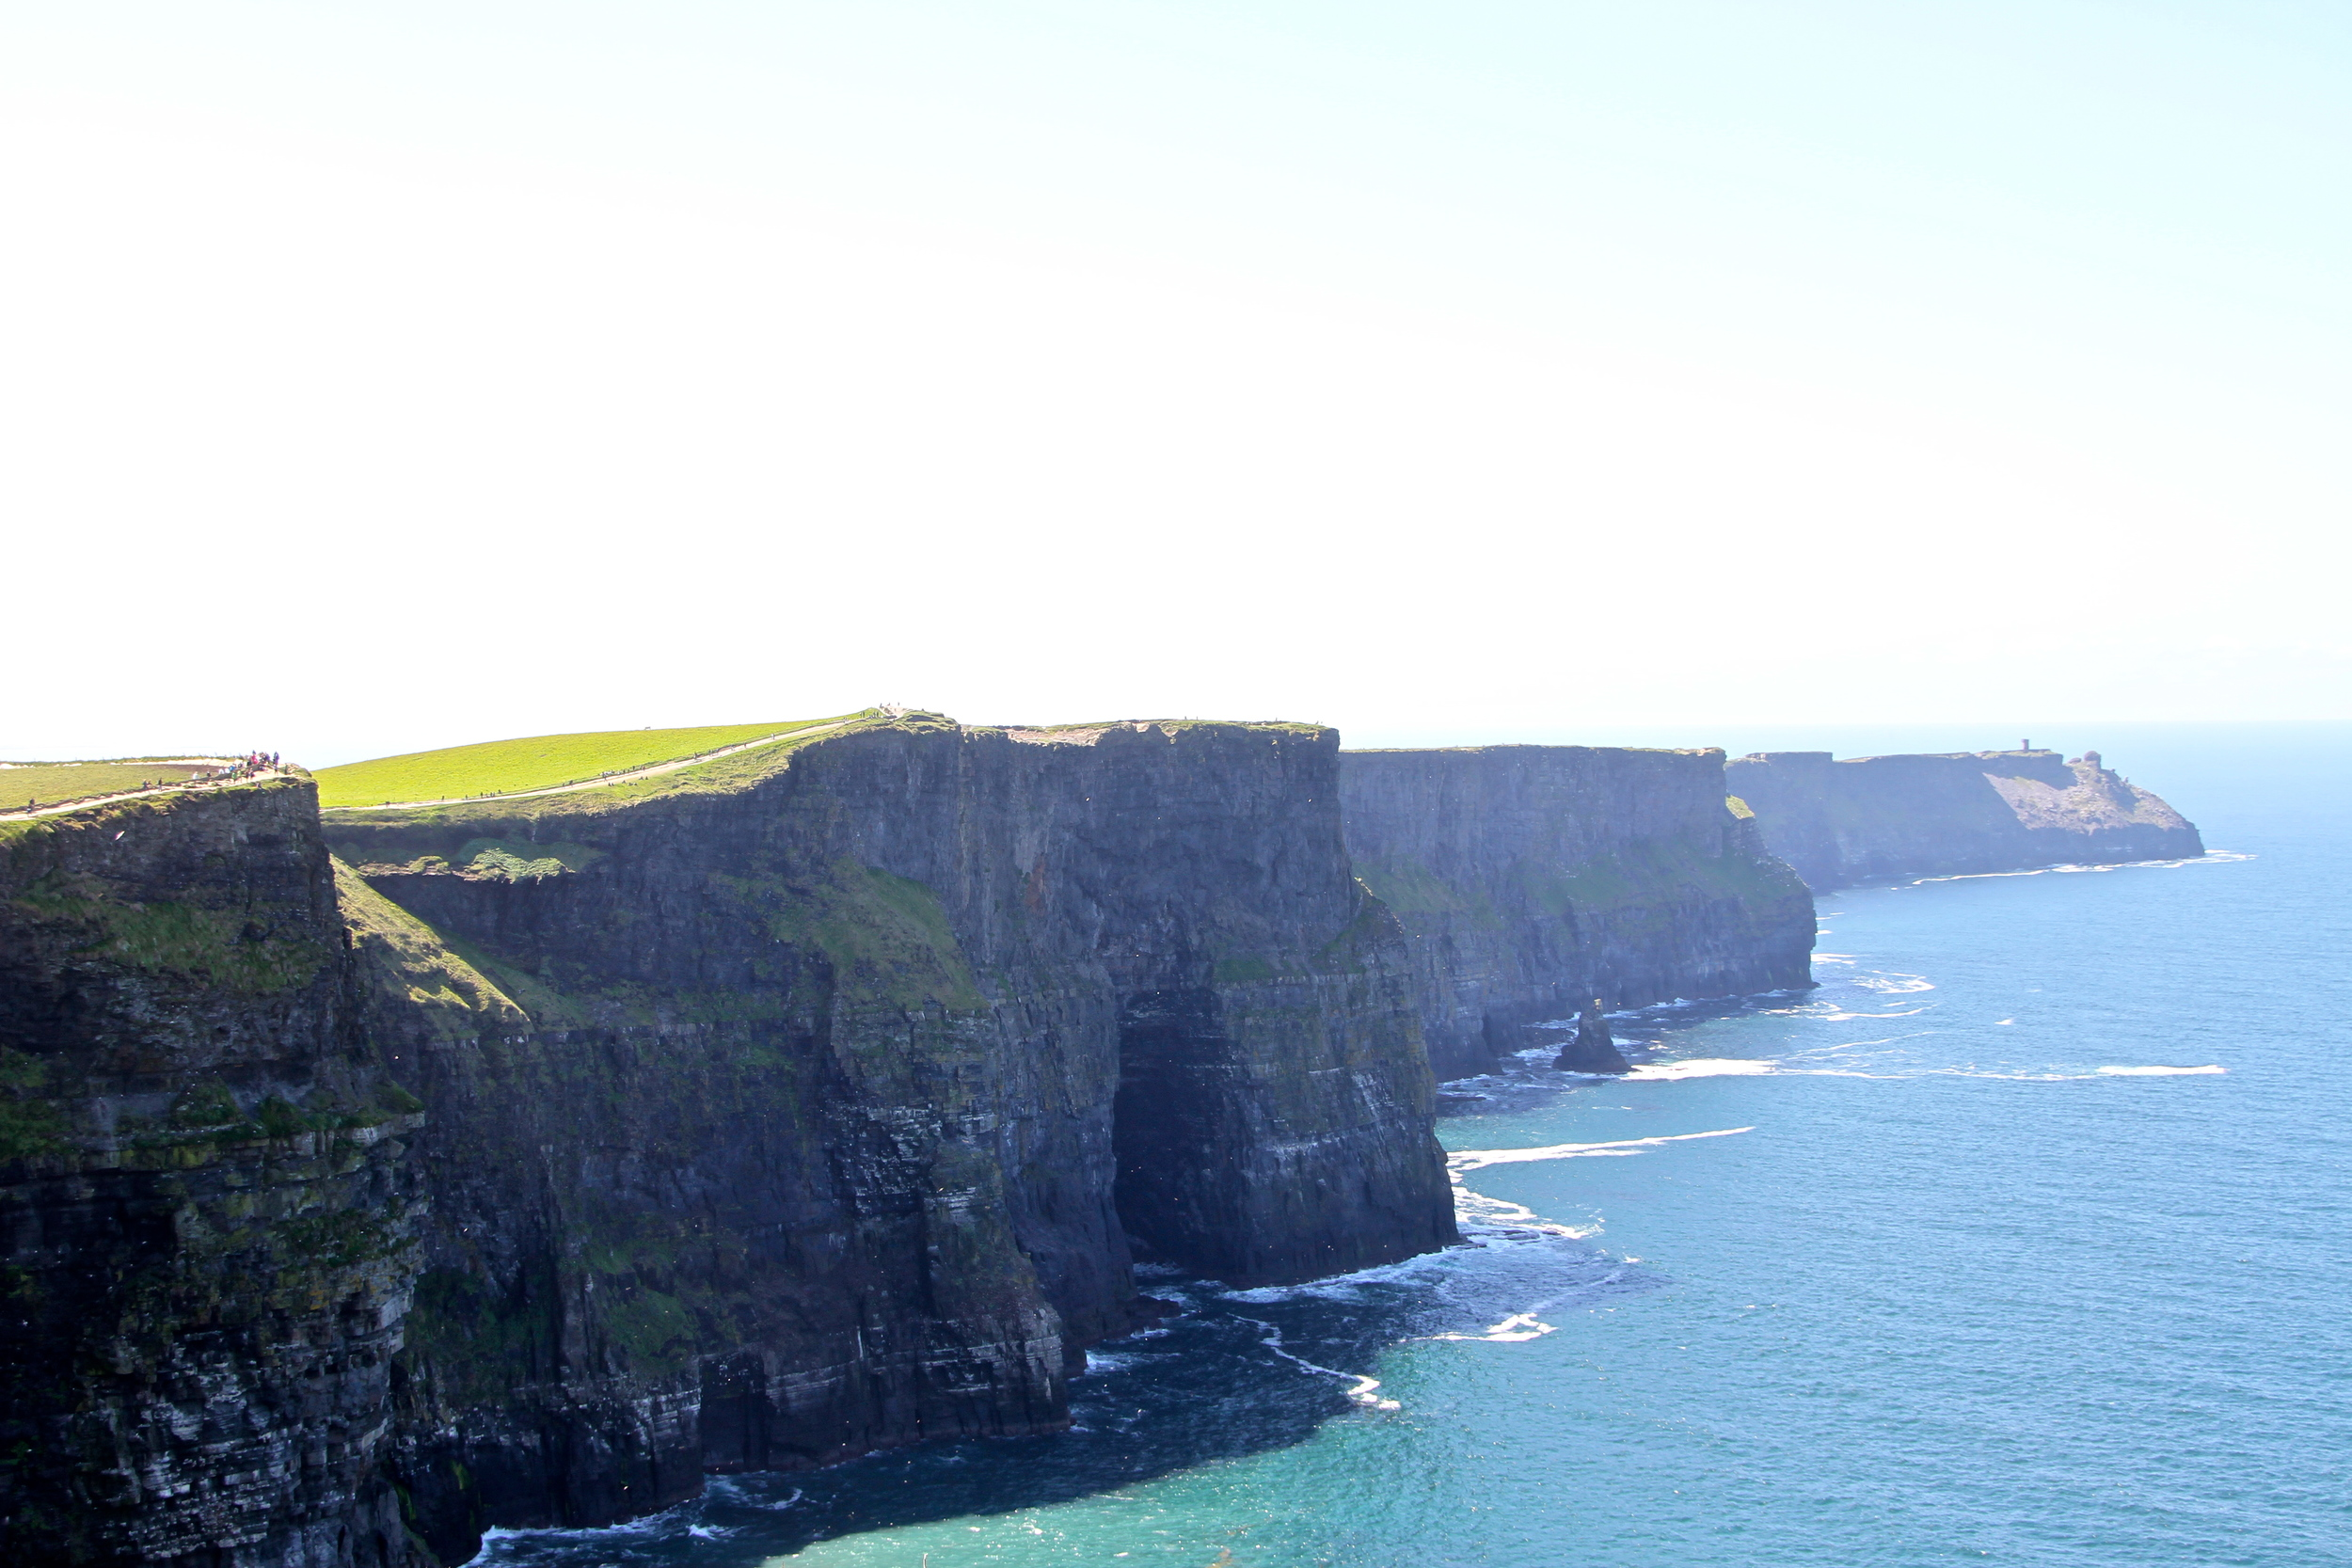 The Cliffs of Moher, Co. Clare, Ireland.